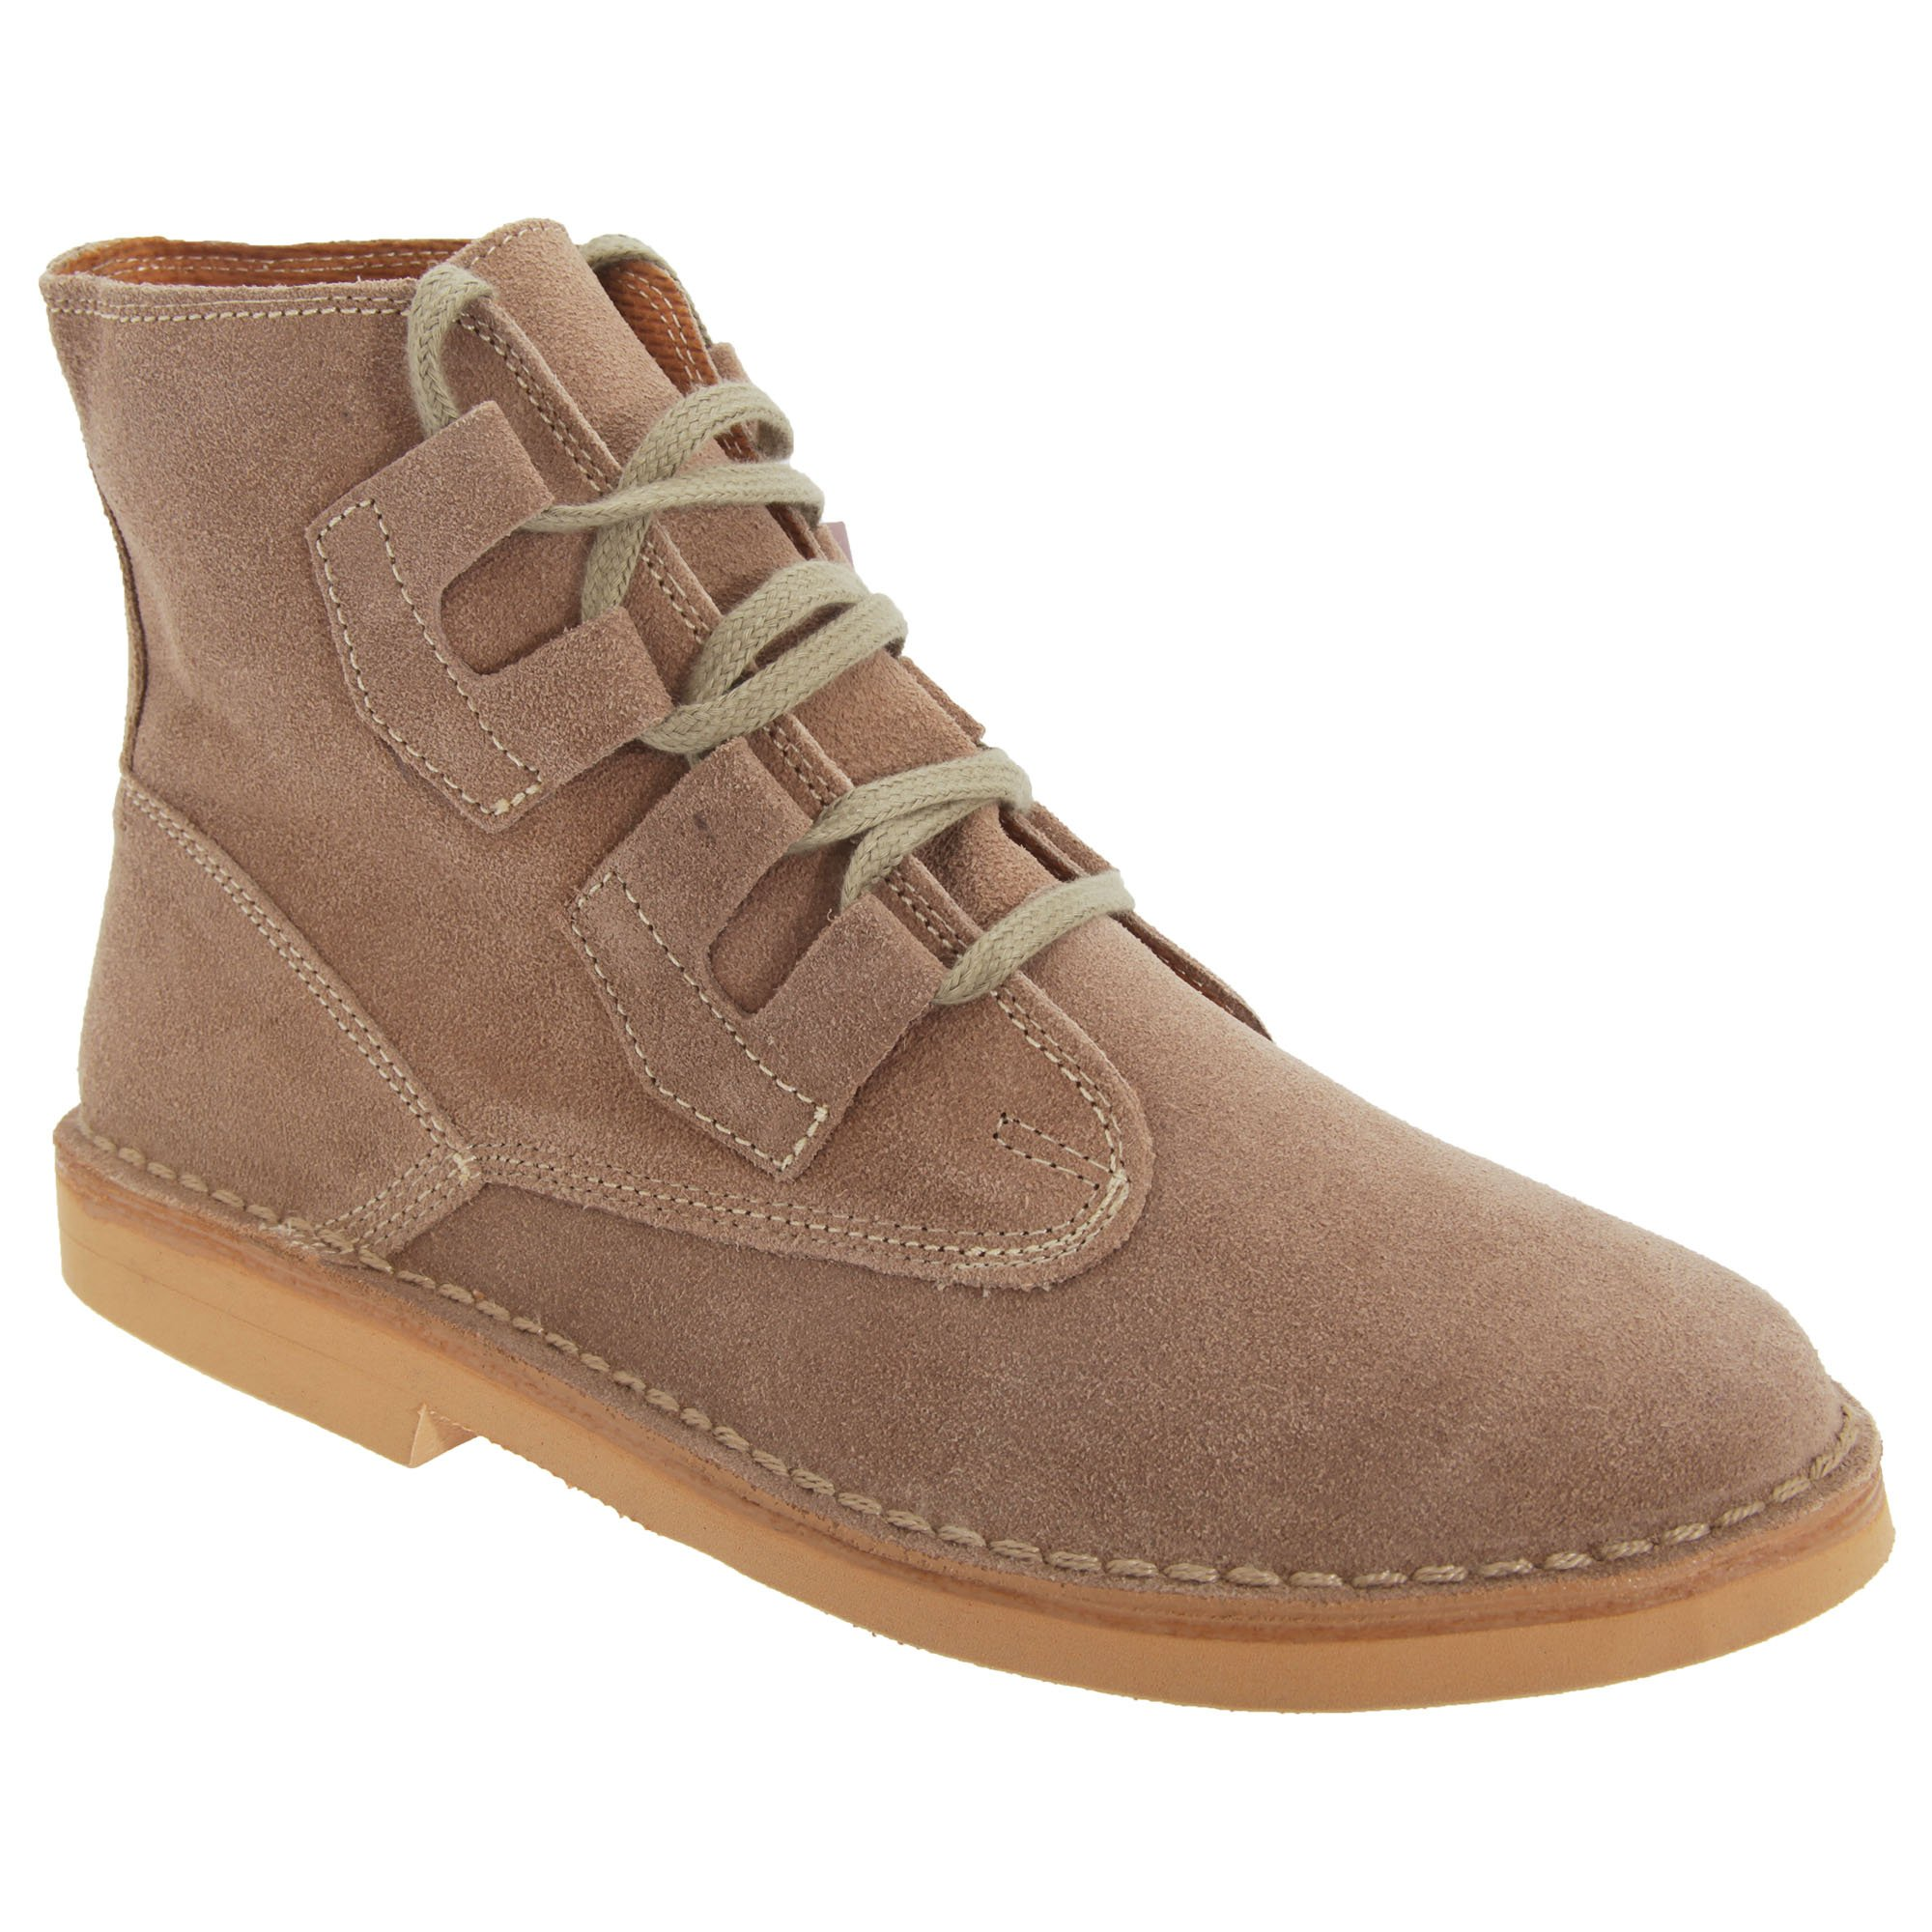 Roamers Mens Ghillie Tie Real Suede Desert Boots (10 US) (Dark Taupe)